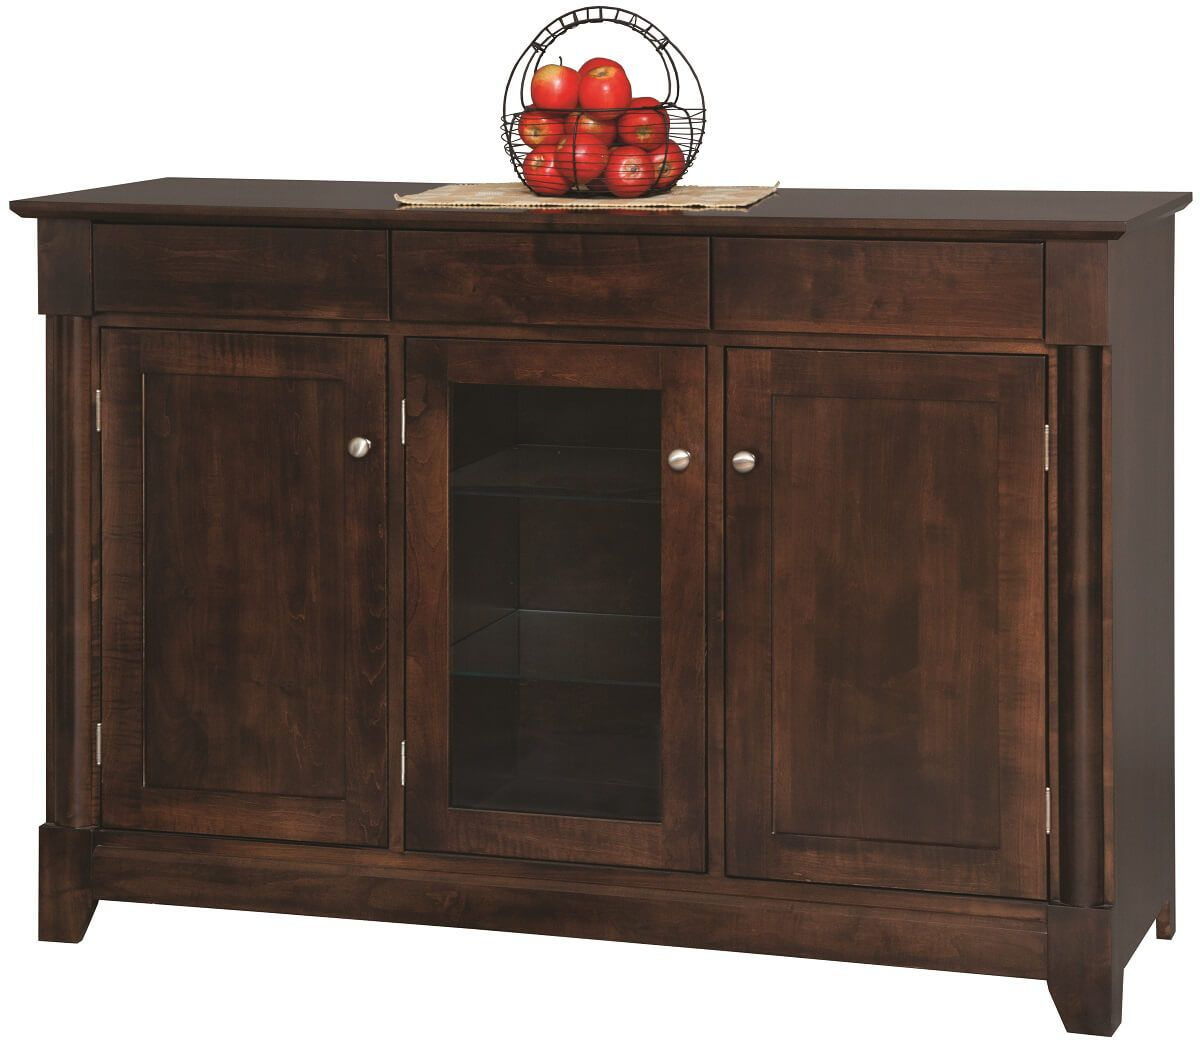 Rochester Classic Bedroom Sideboard - Countryside Amish